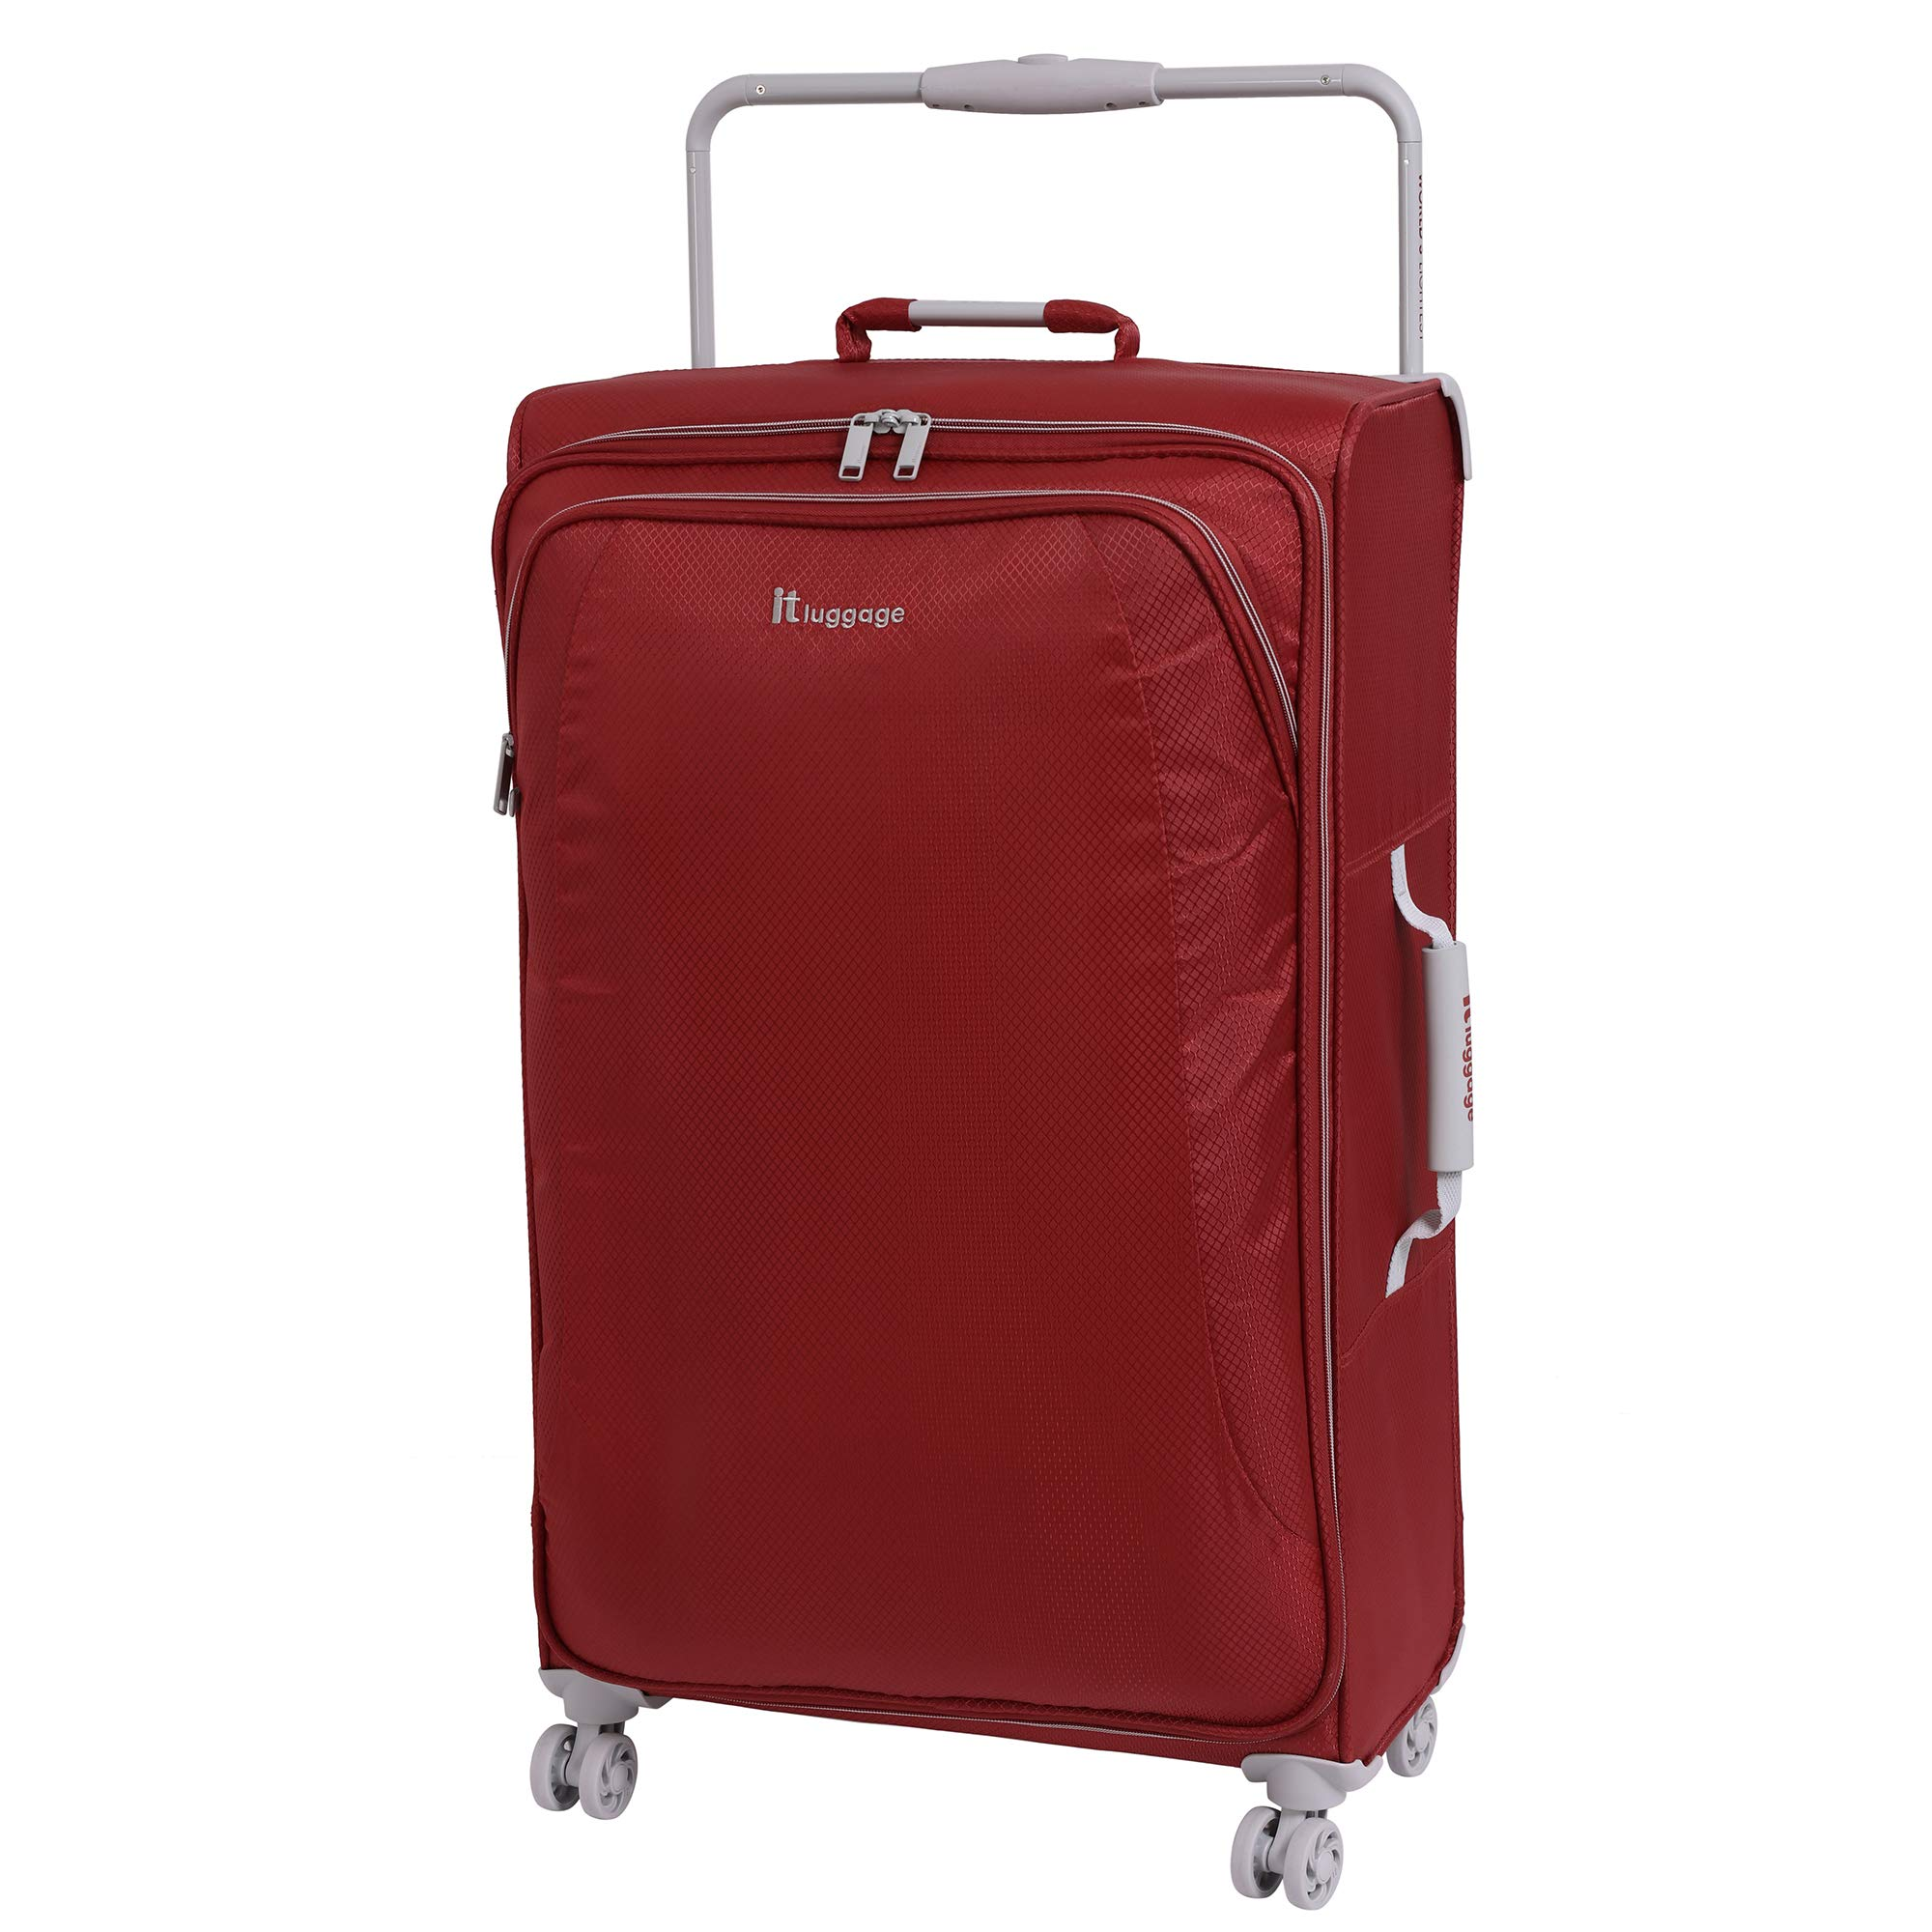 IT Luggage 31.5'' World's Lightest 8 Wheel Spinner, Bossa Nova With Vapor Blue Trim by it luggage